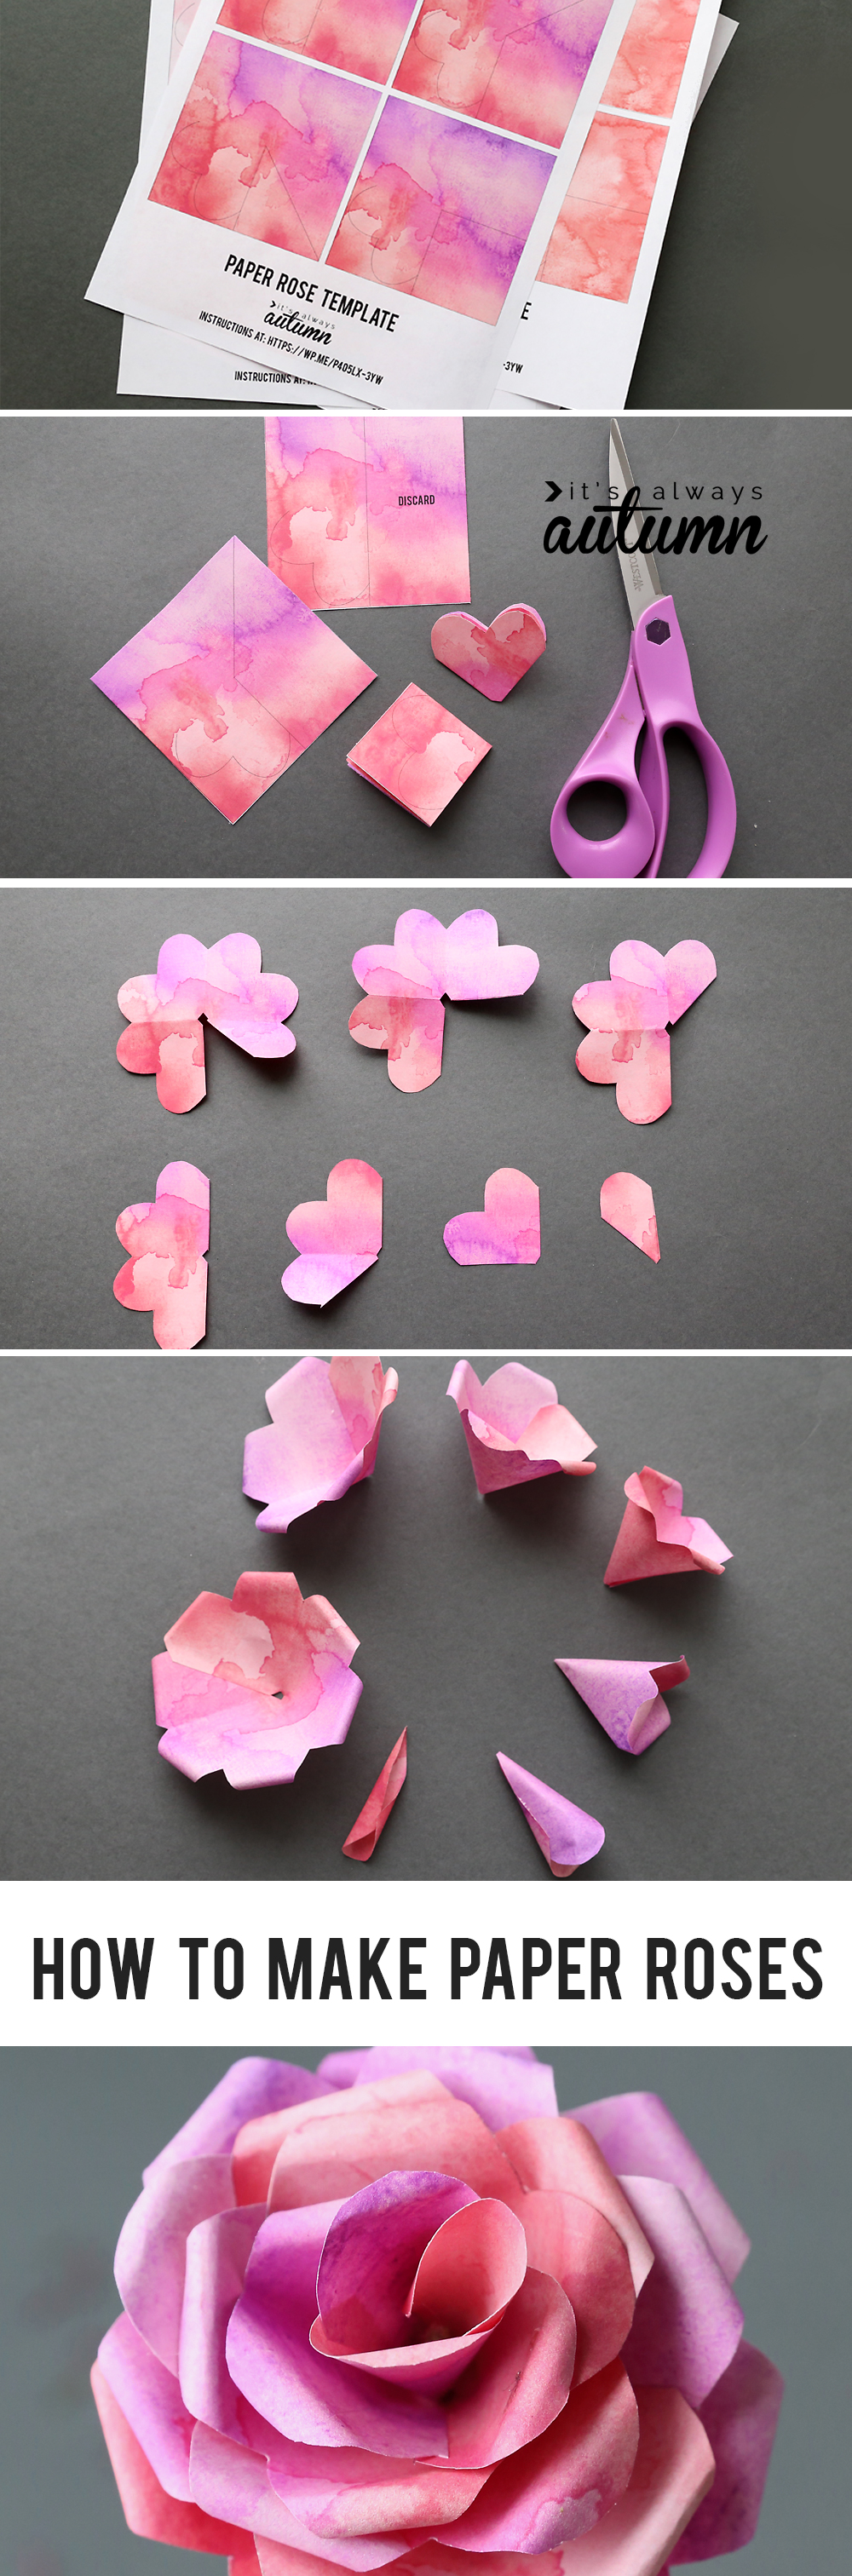 Steps for making paper roses